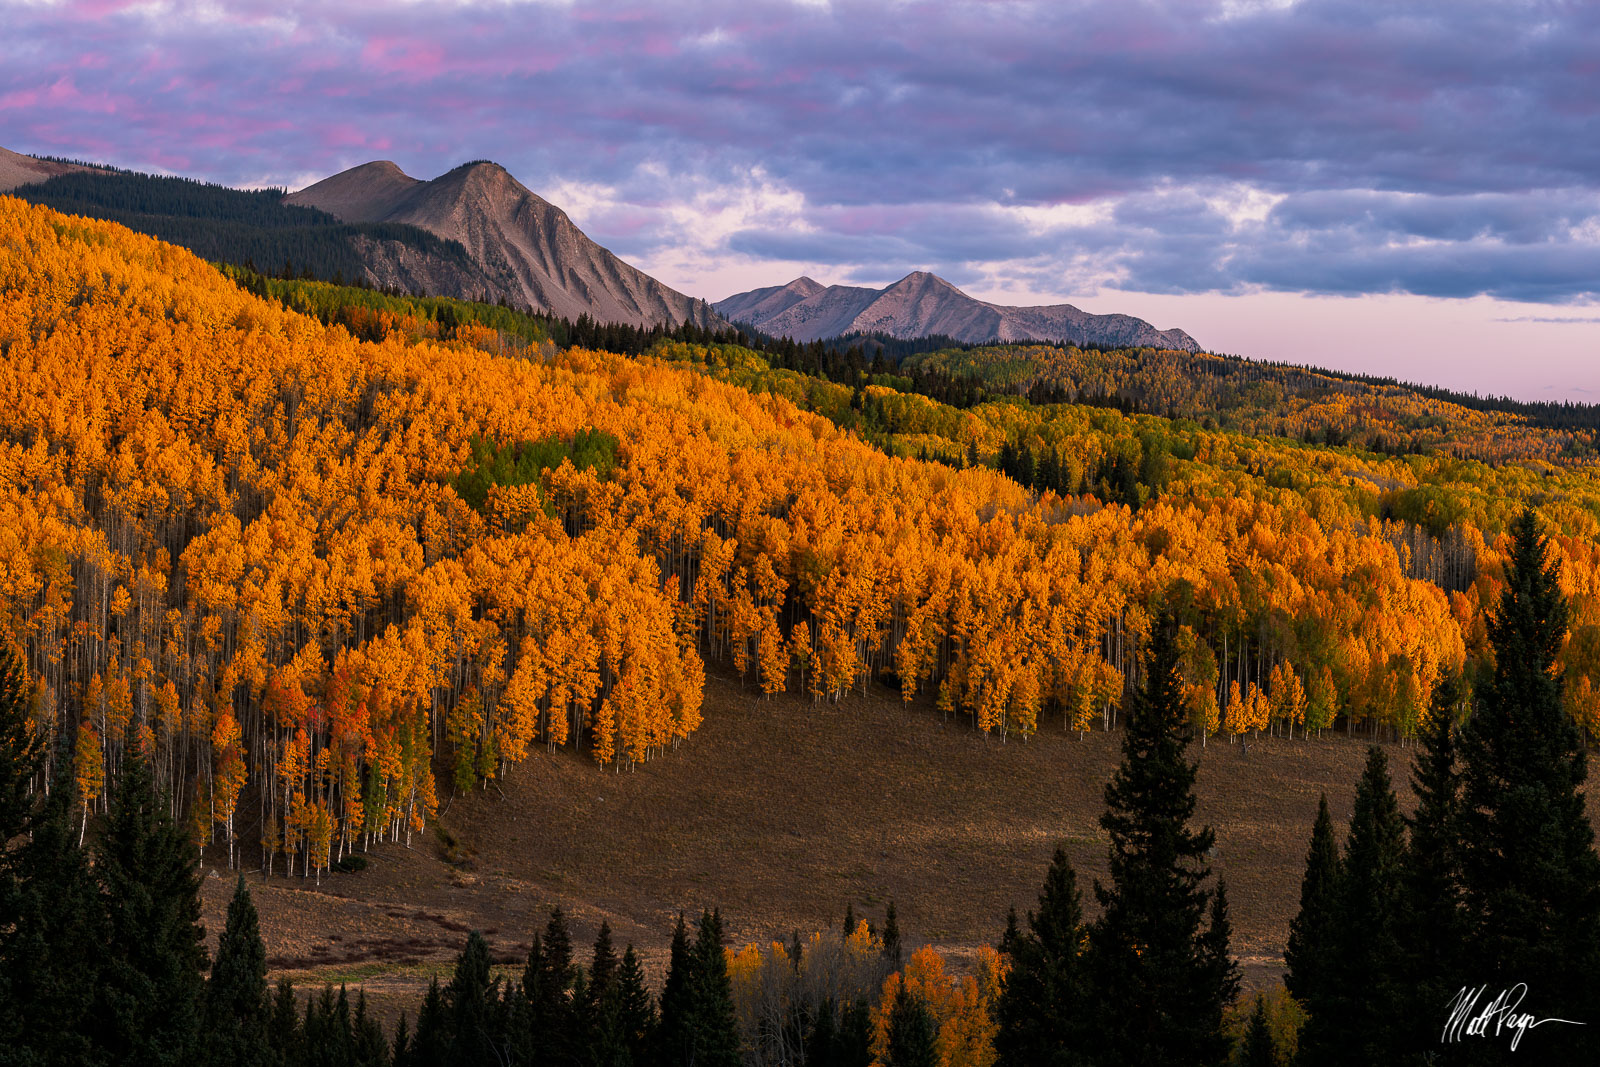 East Beckwith Mountain (at center) stood prominently in the distance from this vantage near The Castles as seen at sunrise during...